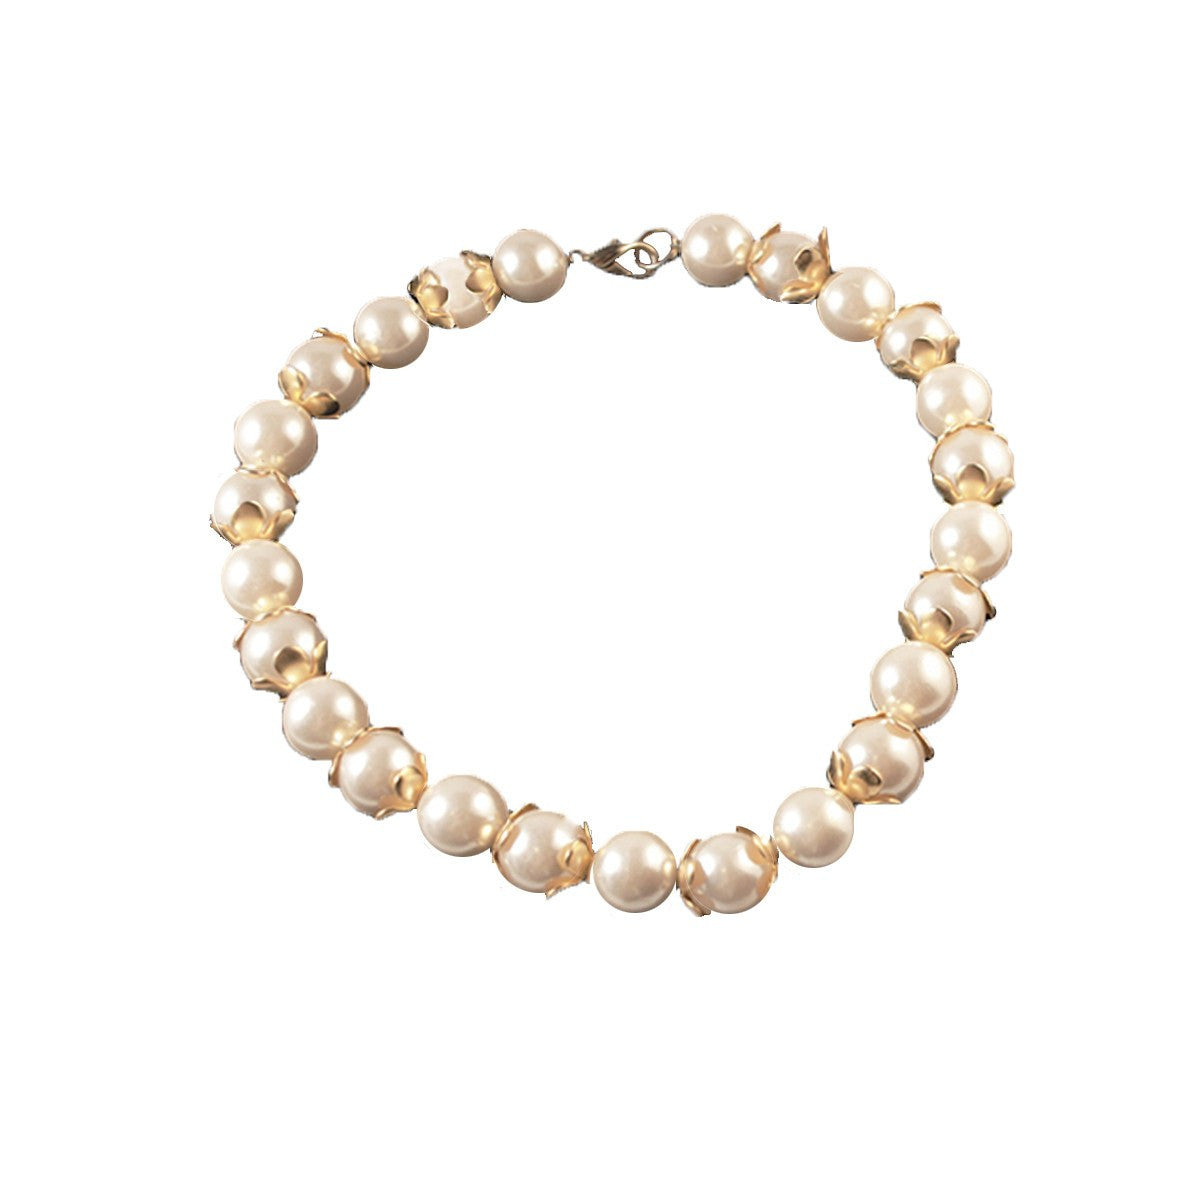 Large Pearl Choker Necklace, Gold Floral Spacer Beads, 16